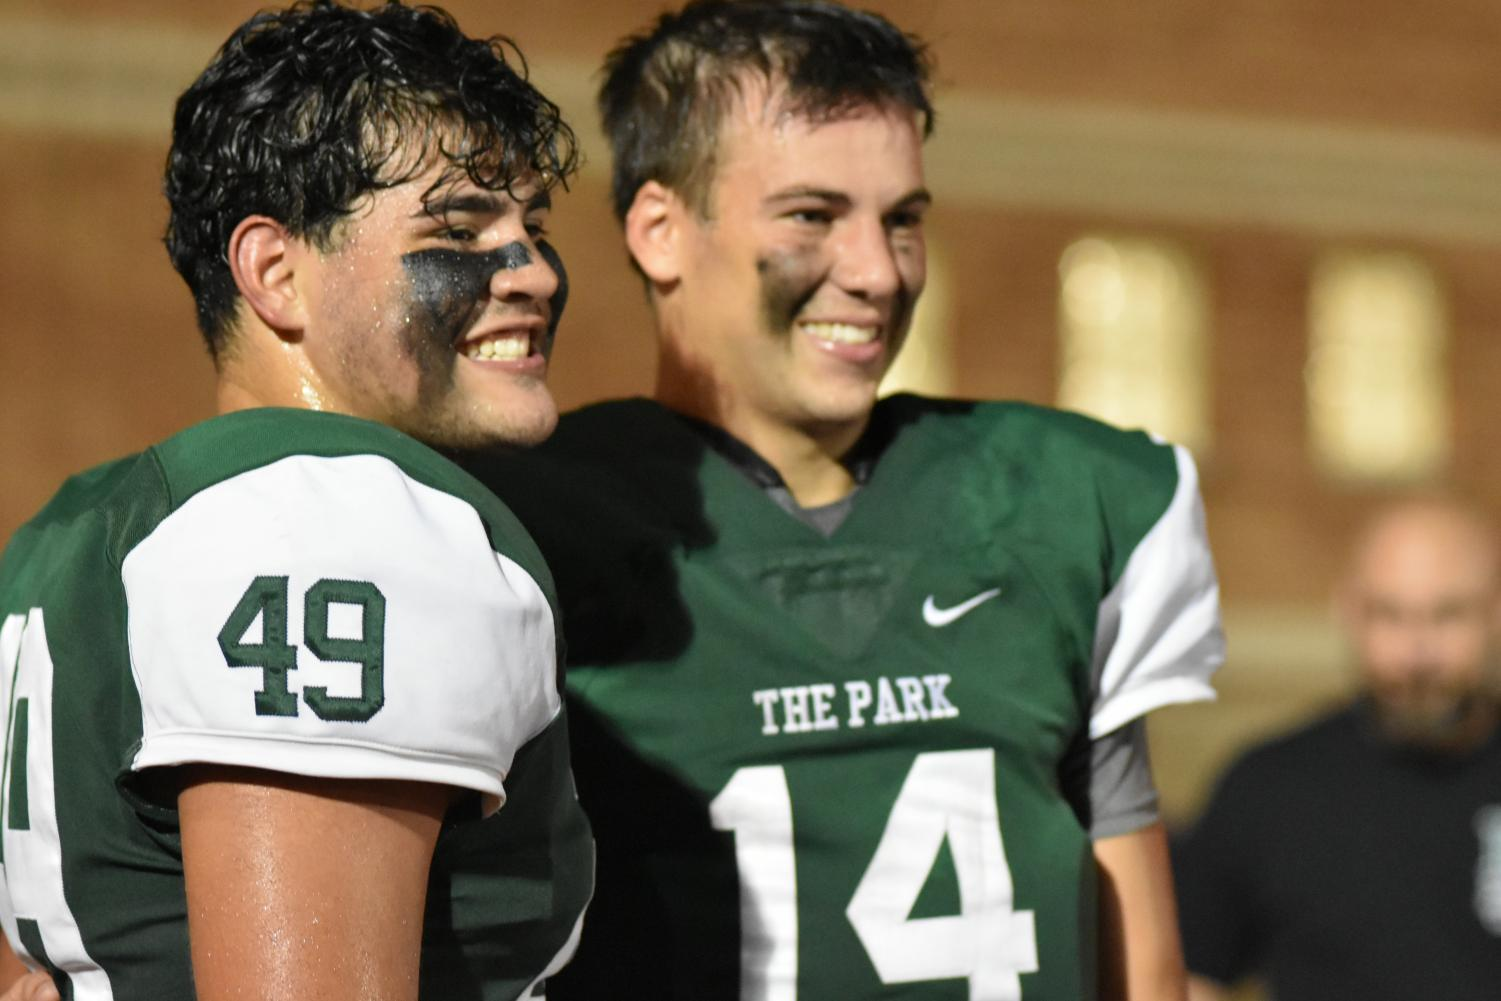 Seniors Hayden Park and Sam Johansen celebrate together after defeating Porter on Sept. 29. They have helped lead the team to a 3-0 district record. They will face New Caney this weekend, a team that is also 3-0 in district play.